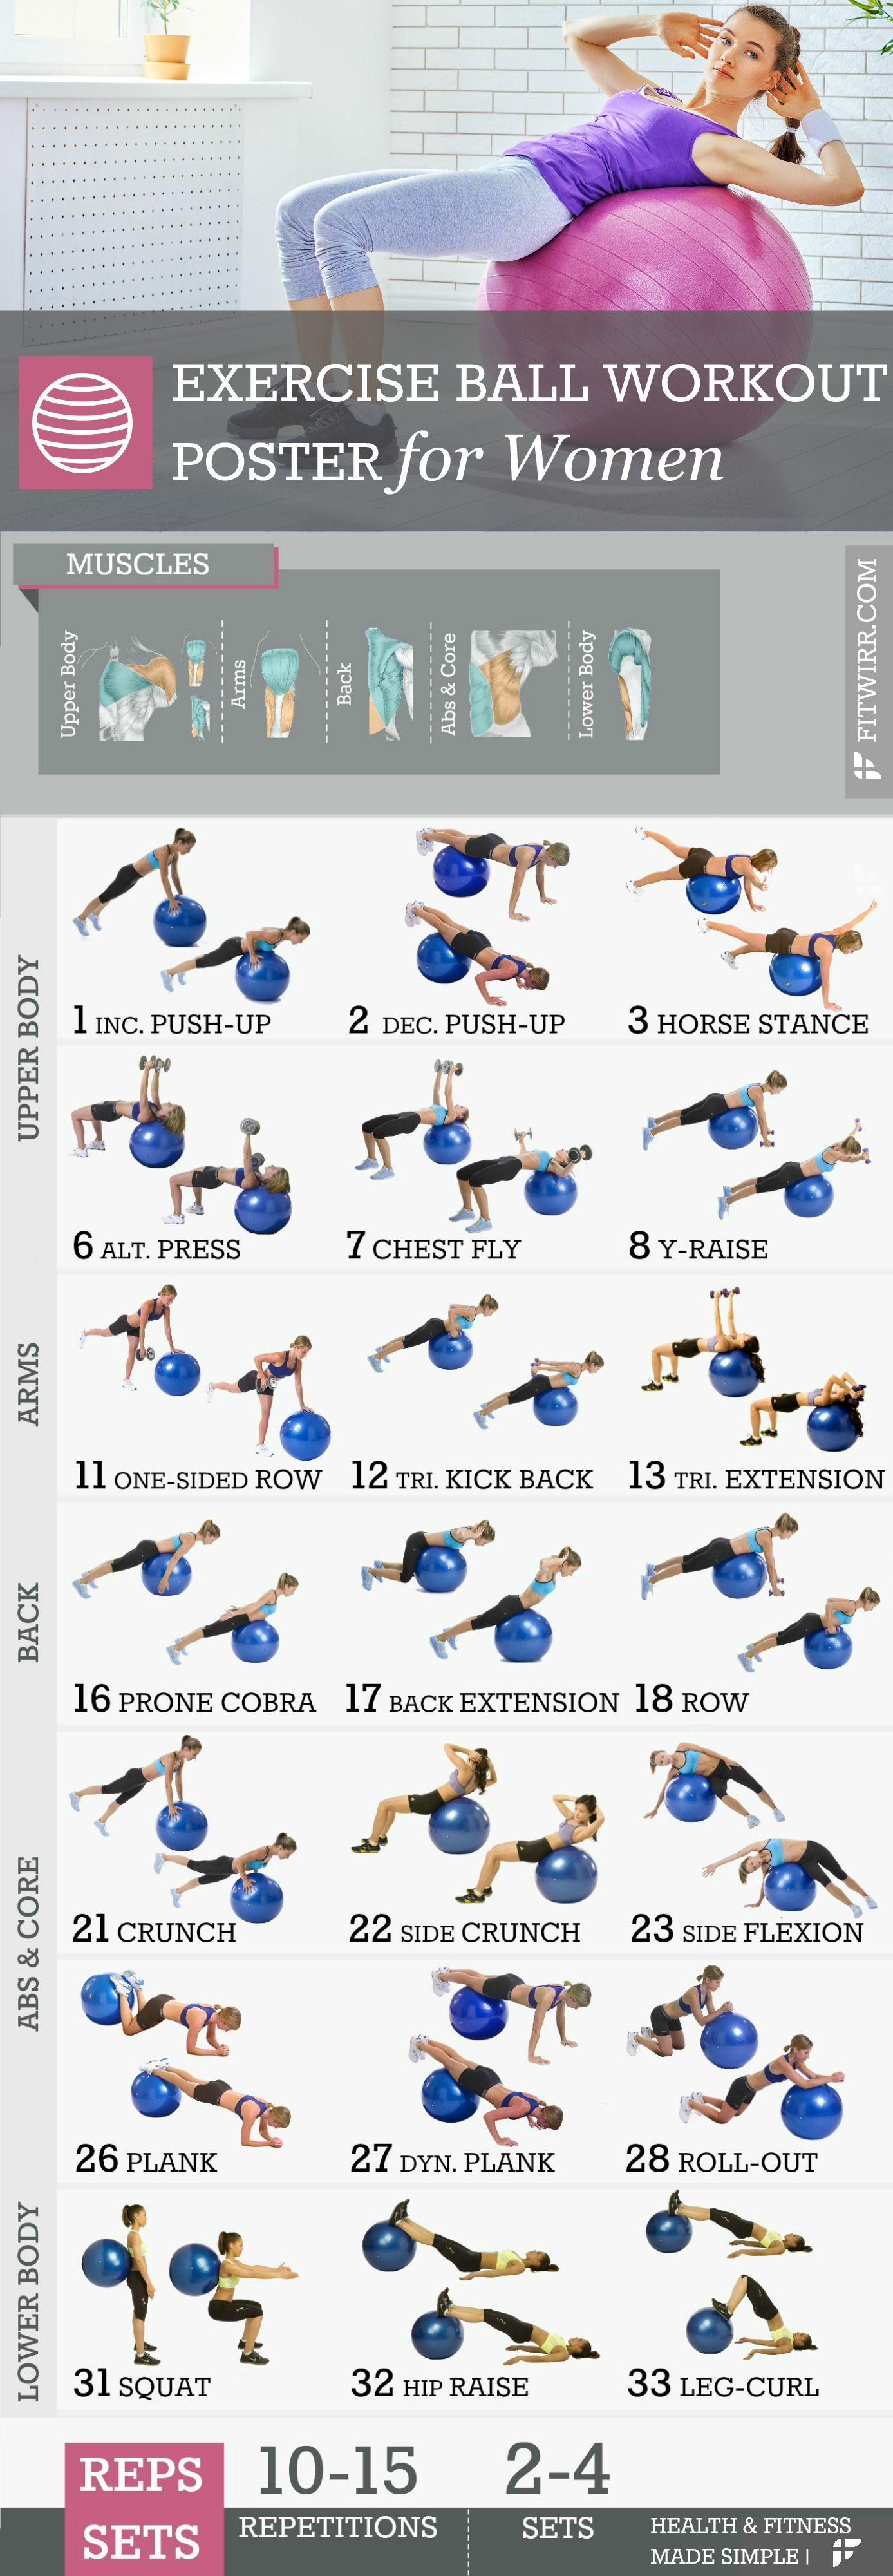 Stability Ball Exercise Workout Poster Laminated 19 X27 Ball Exercises Workout Posters Workout